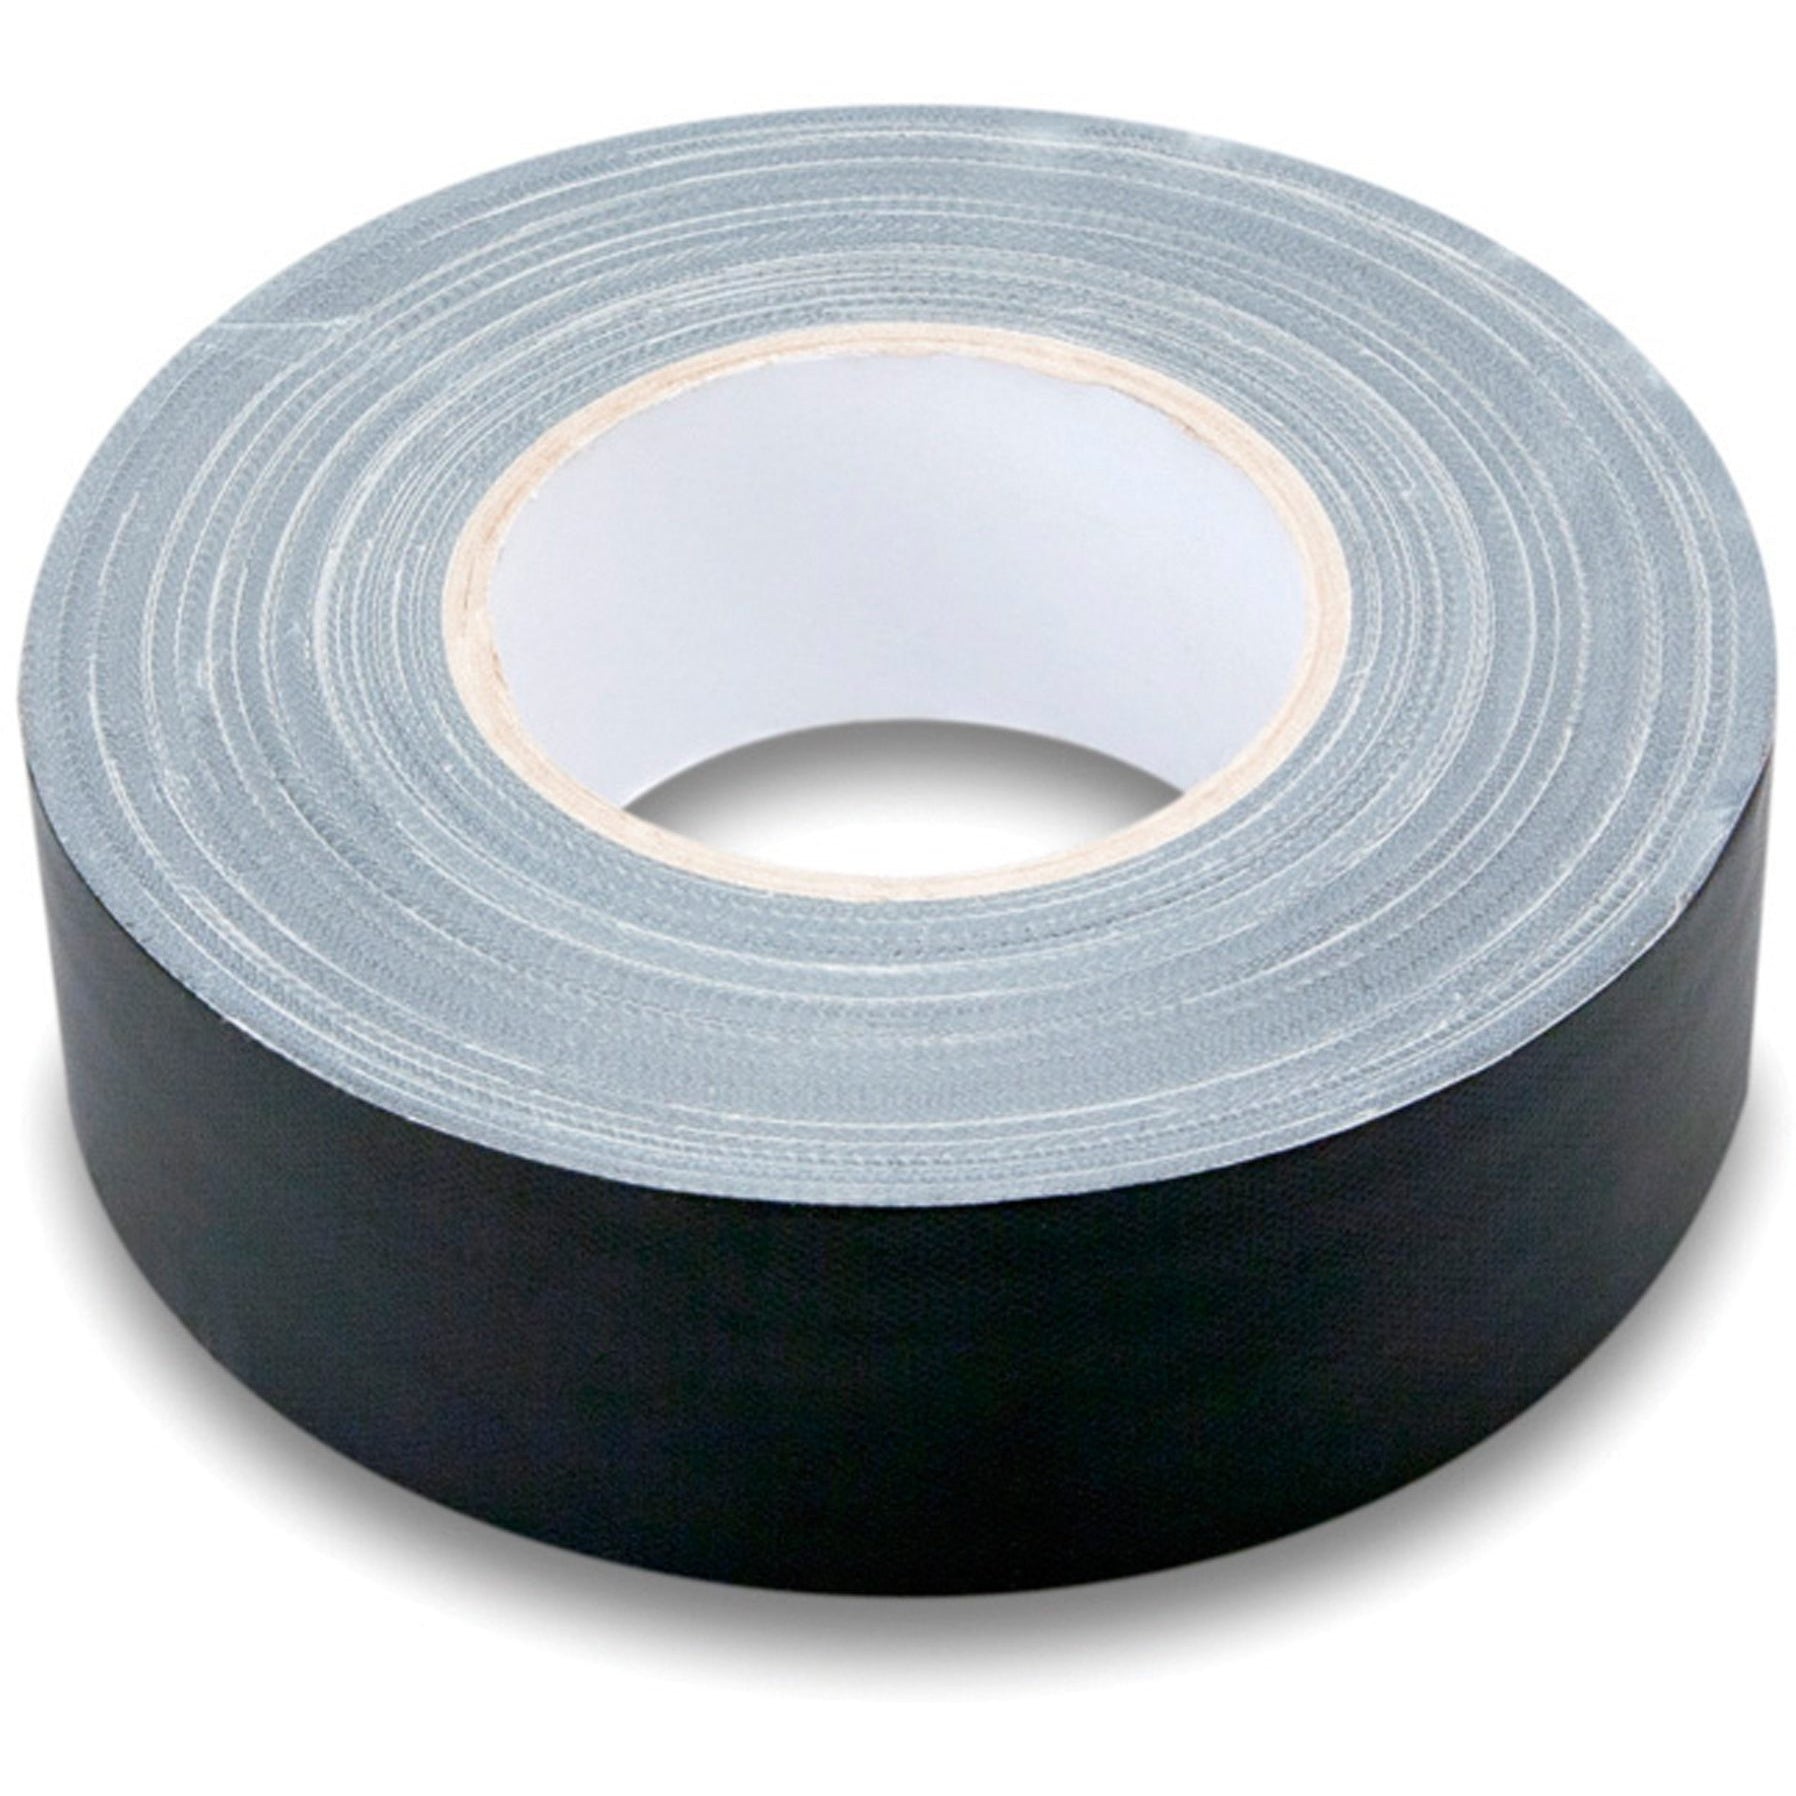 Hosa GFT Gaffer's Tape, Black, GFT-447BK, 2-Inch Wide, 60 Yards